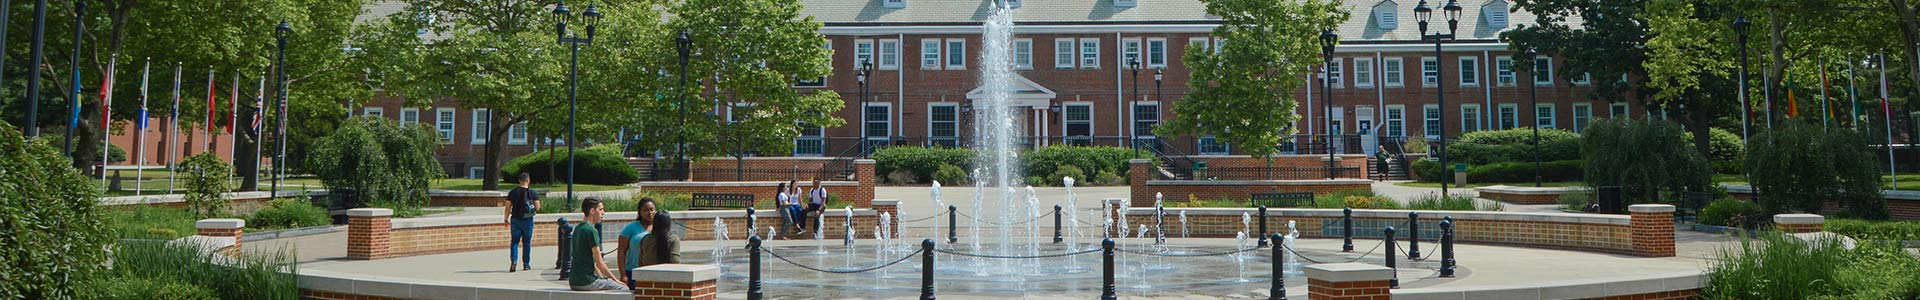 Bunche Plaza fountain with students.